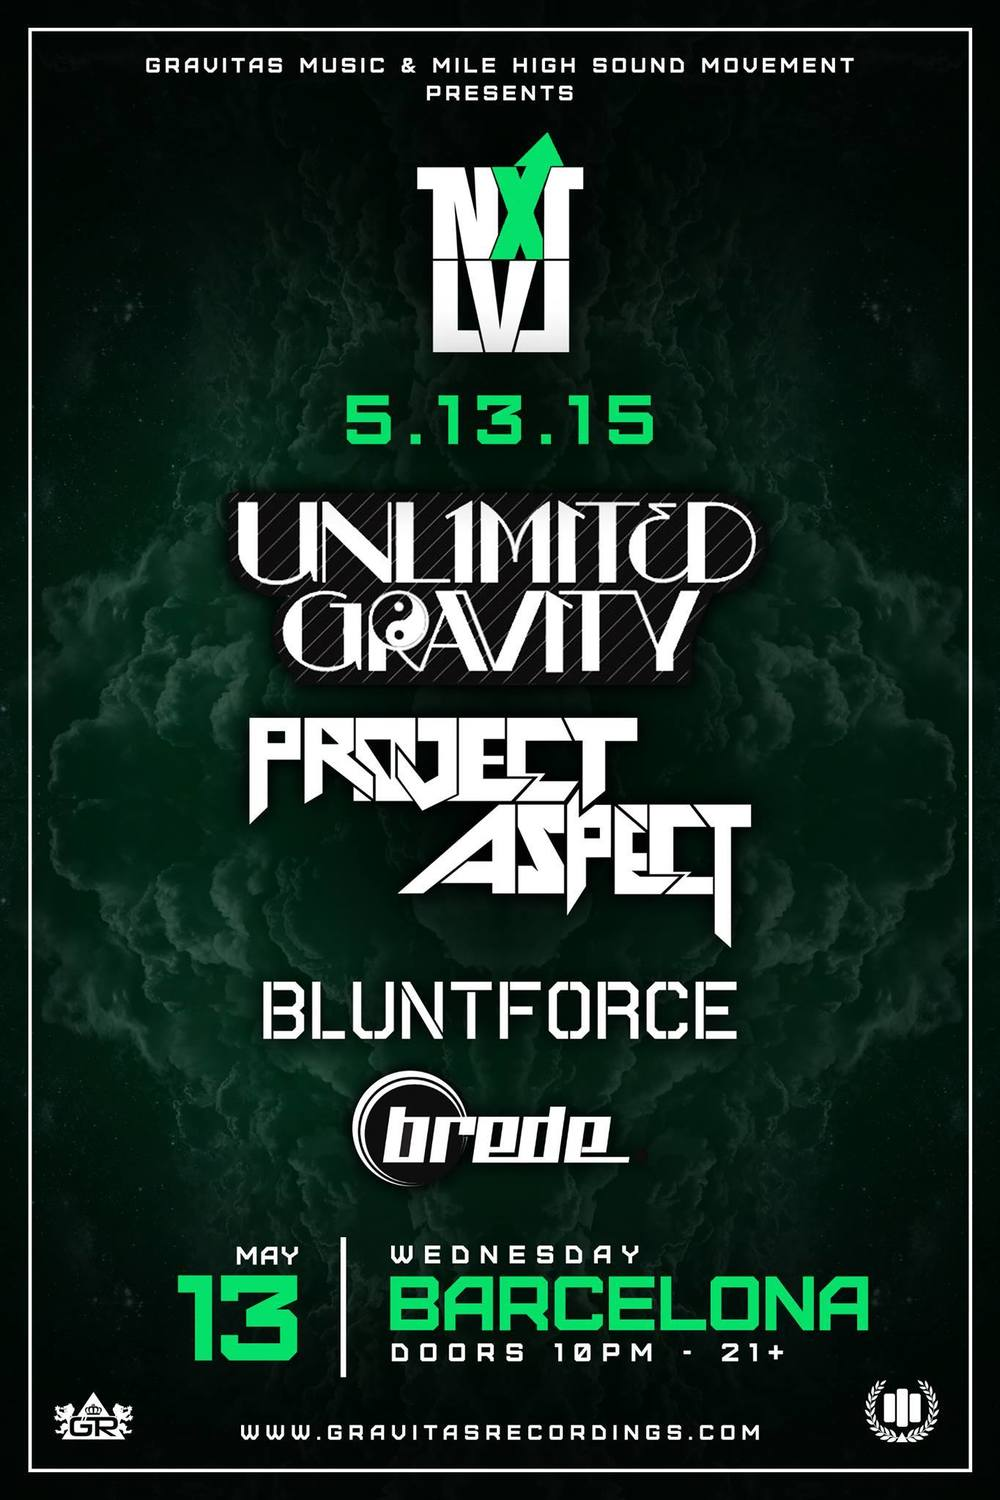 Blunt Force Barcelona Project Aspect Unlimited Gravity